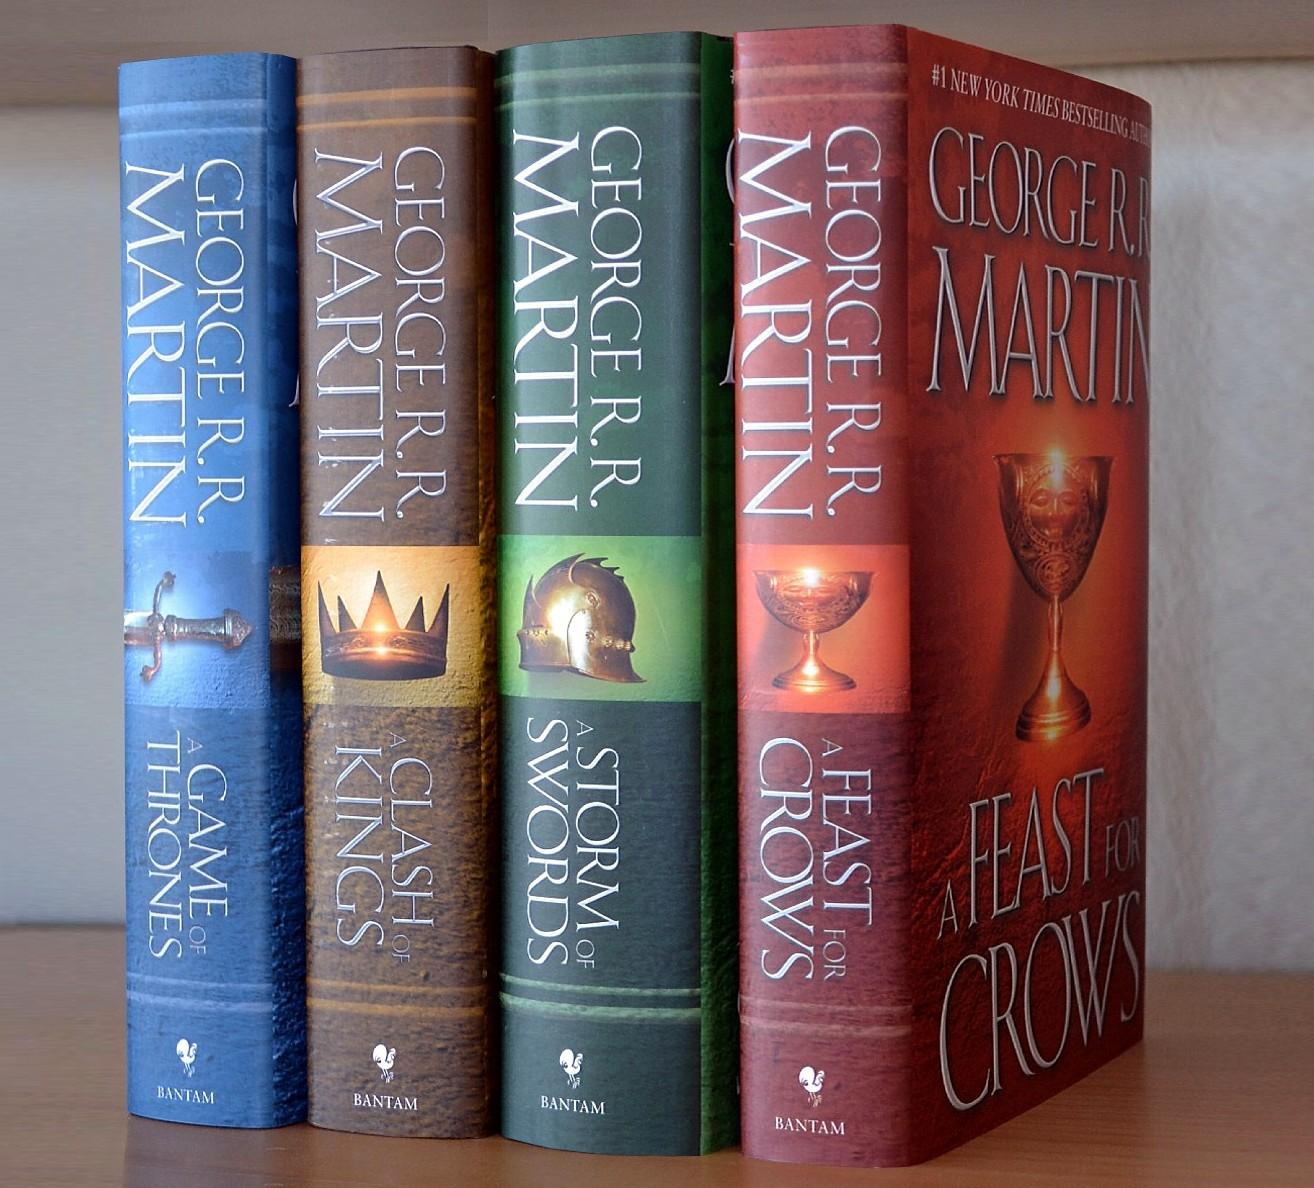 Image for 4 Book Set (Books 1-4):  Game of Thrones, Clash of Kings, Storm of Swords, Feast for Crows ** ALL SIGNED **  (A Song of Ice and Fire series)